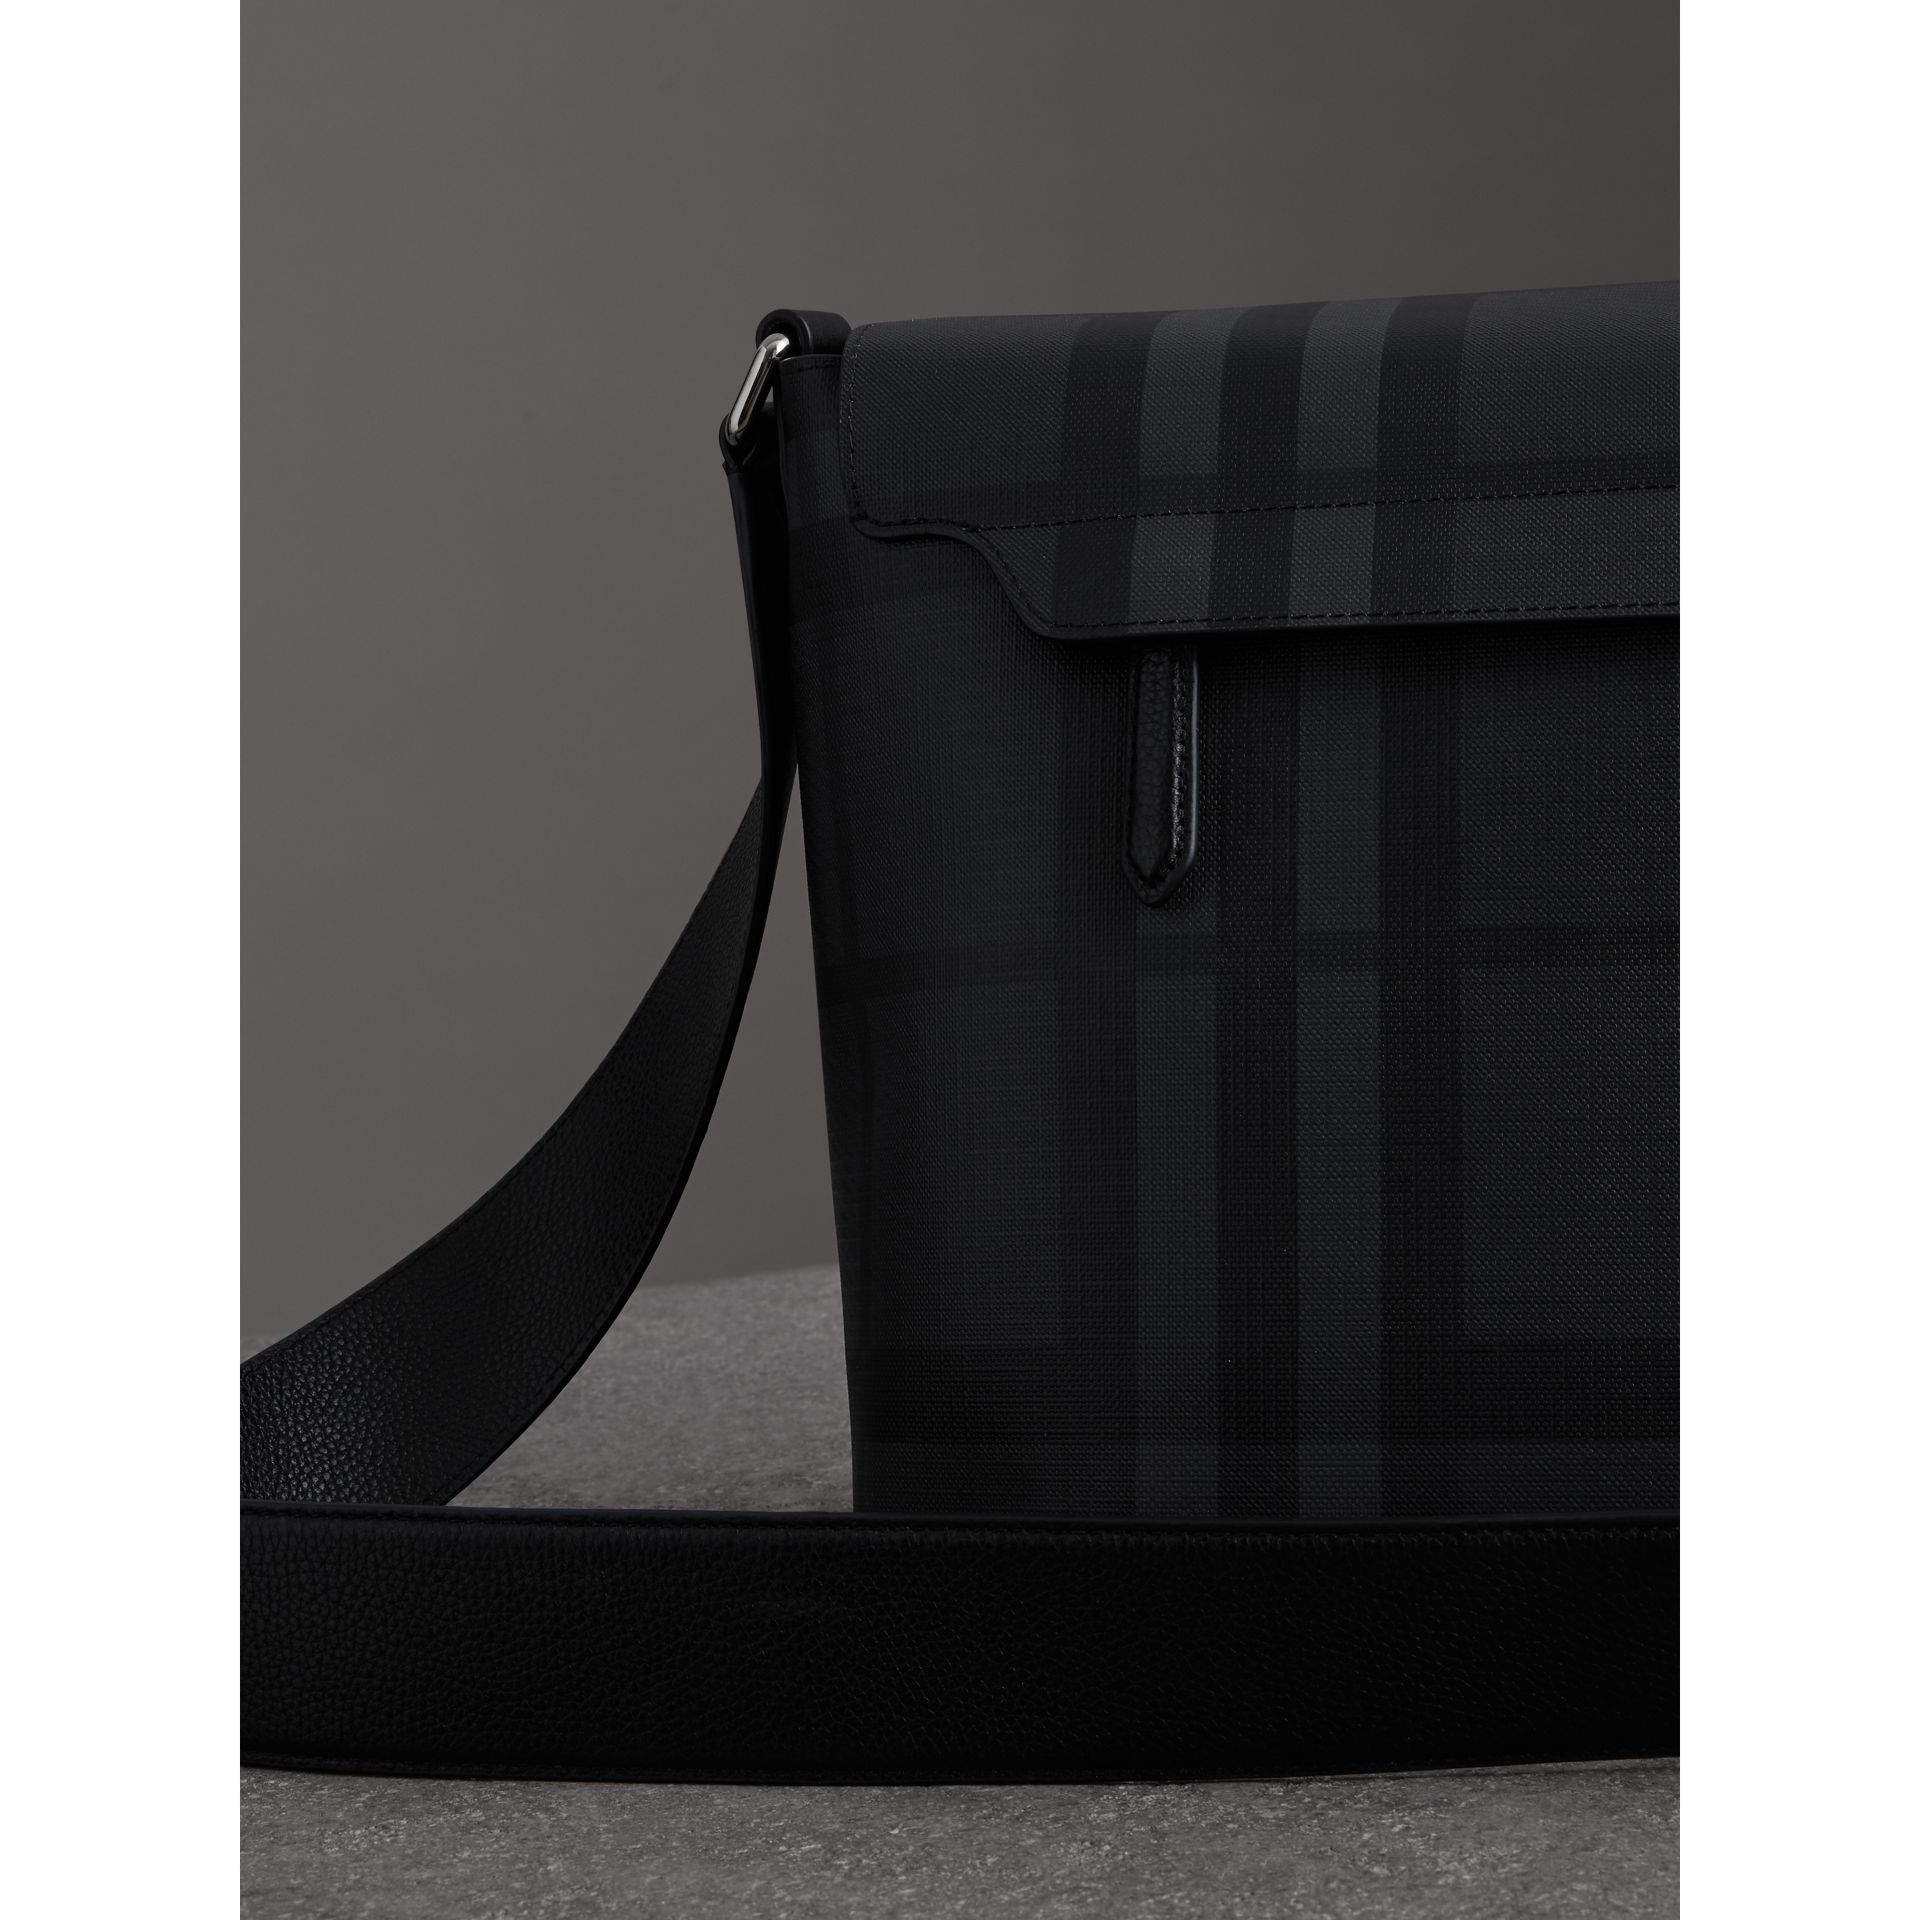 Large Logo Print Messenger Bag in Charcoal - Men | Burberry - gallery image 4